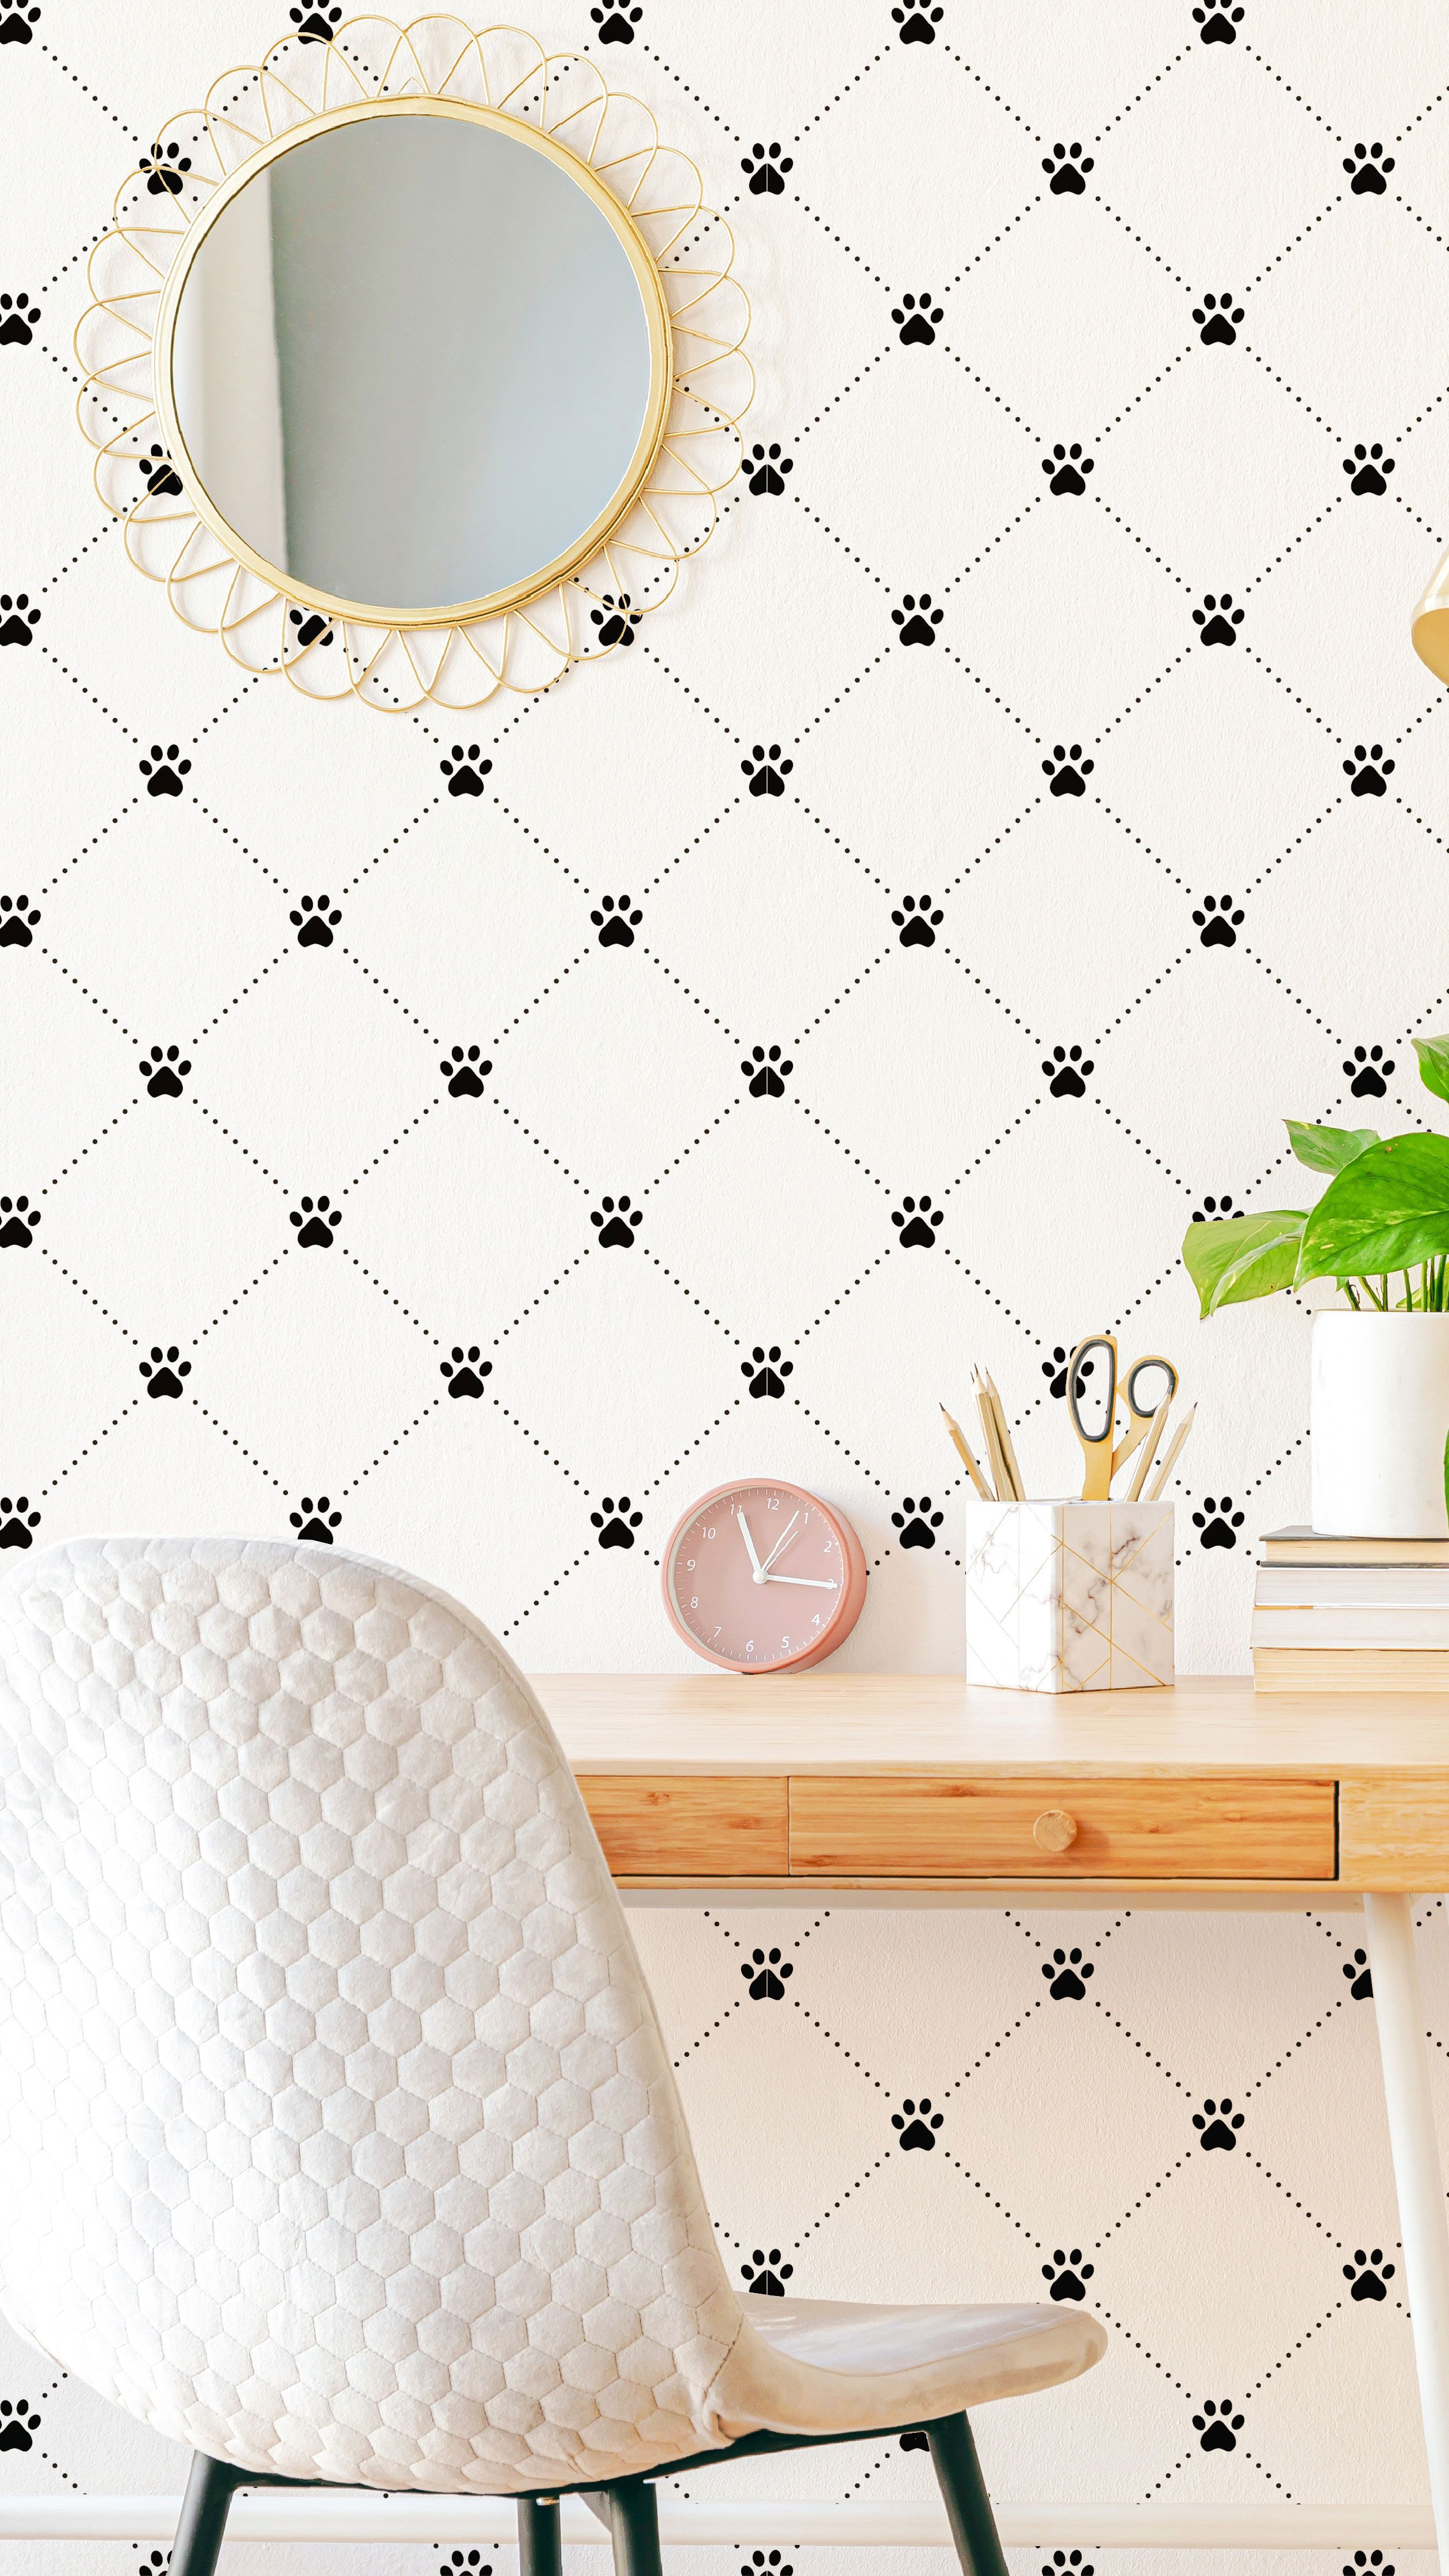 Black And White Dog Peel And Stick Removable Wallpaper 7337 Removable Wallpaper Peel And Stick Wallpaper Black And White Wallpaper